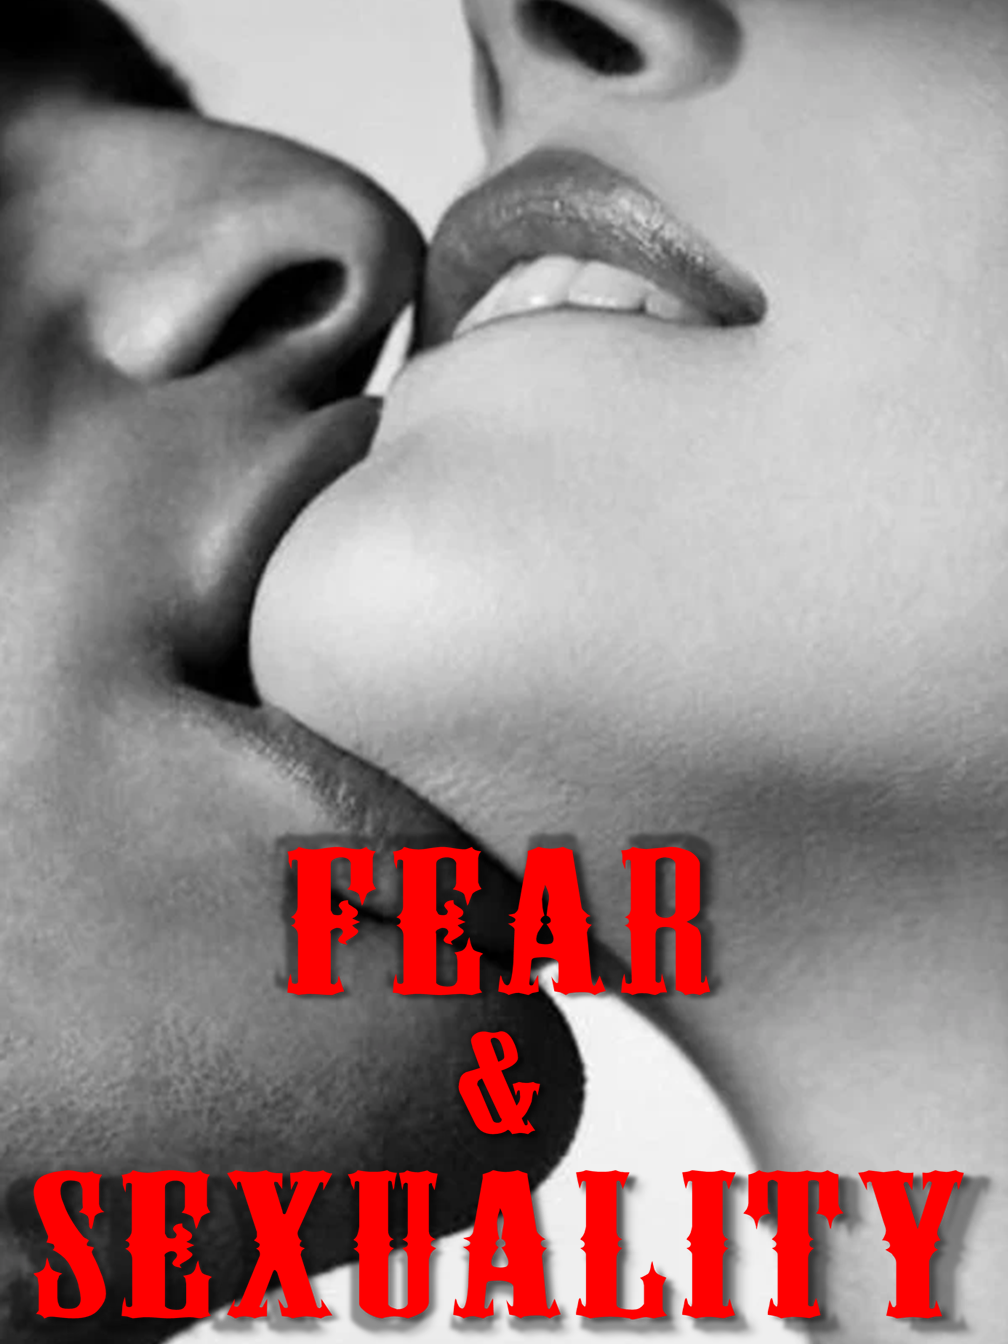 Fear & Sexuality!